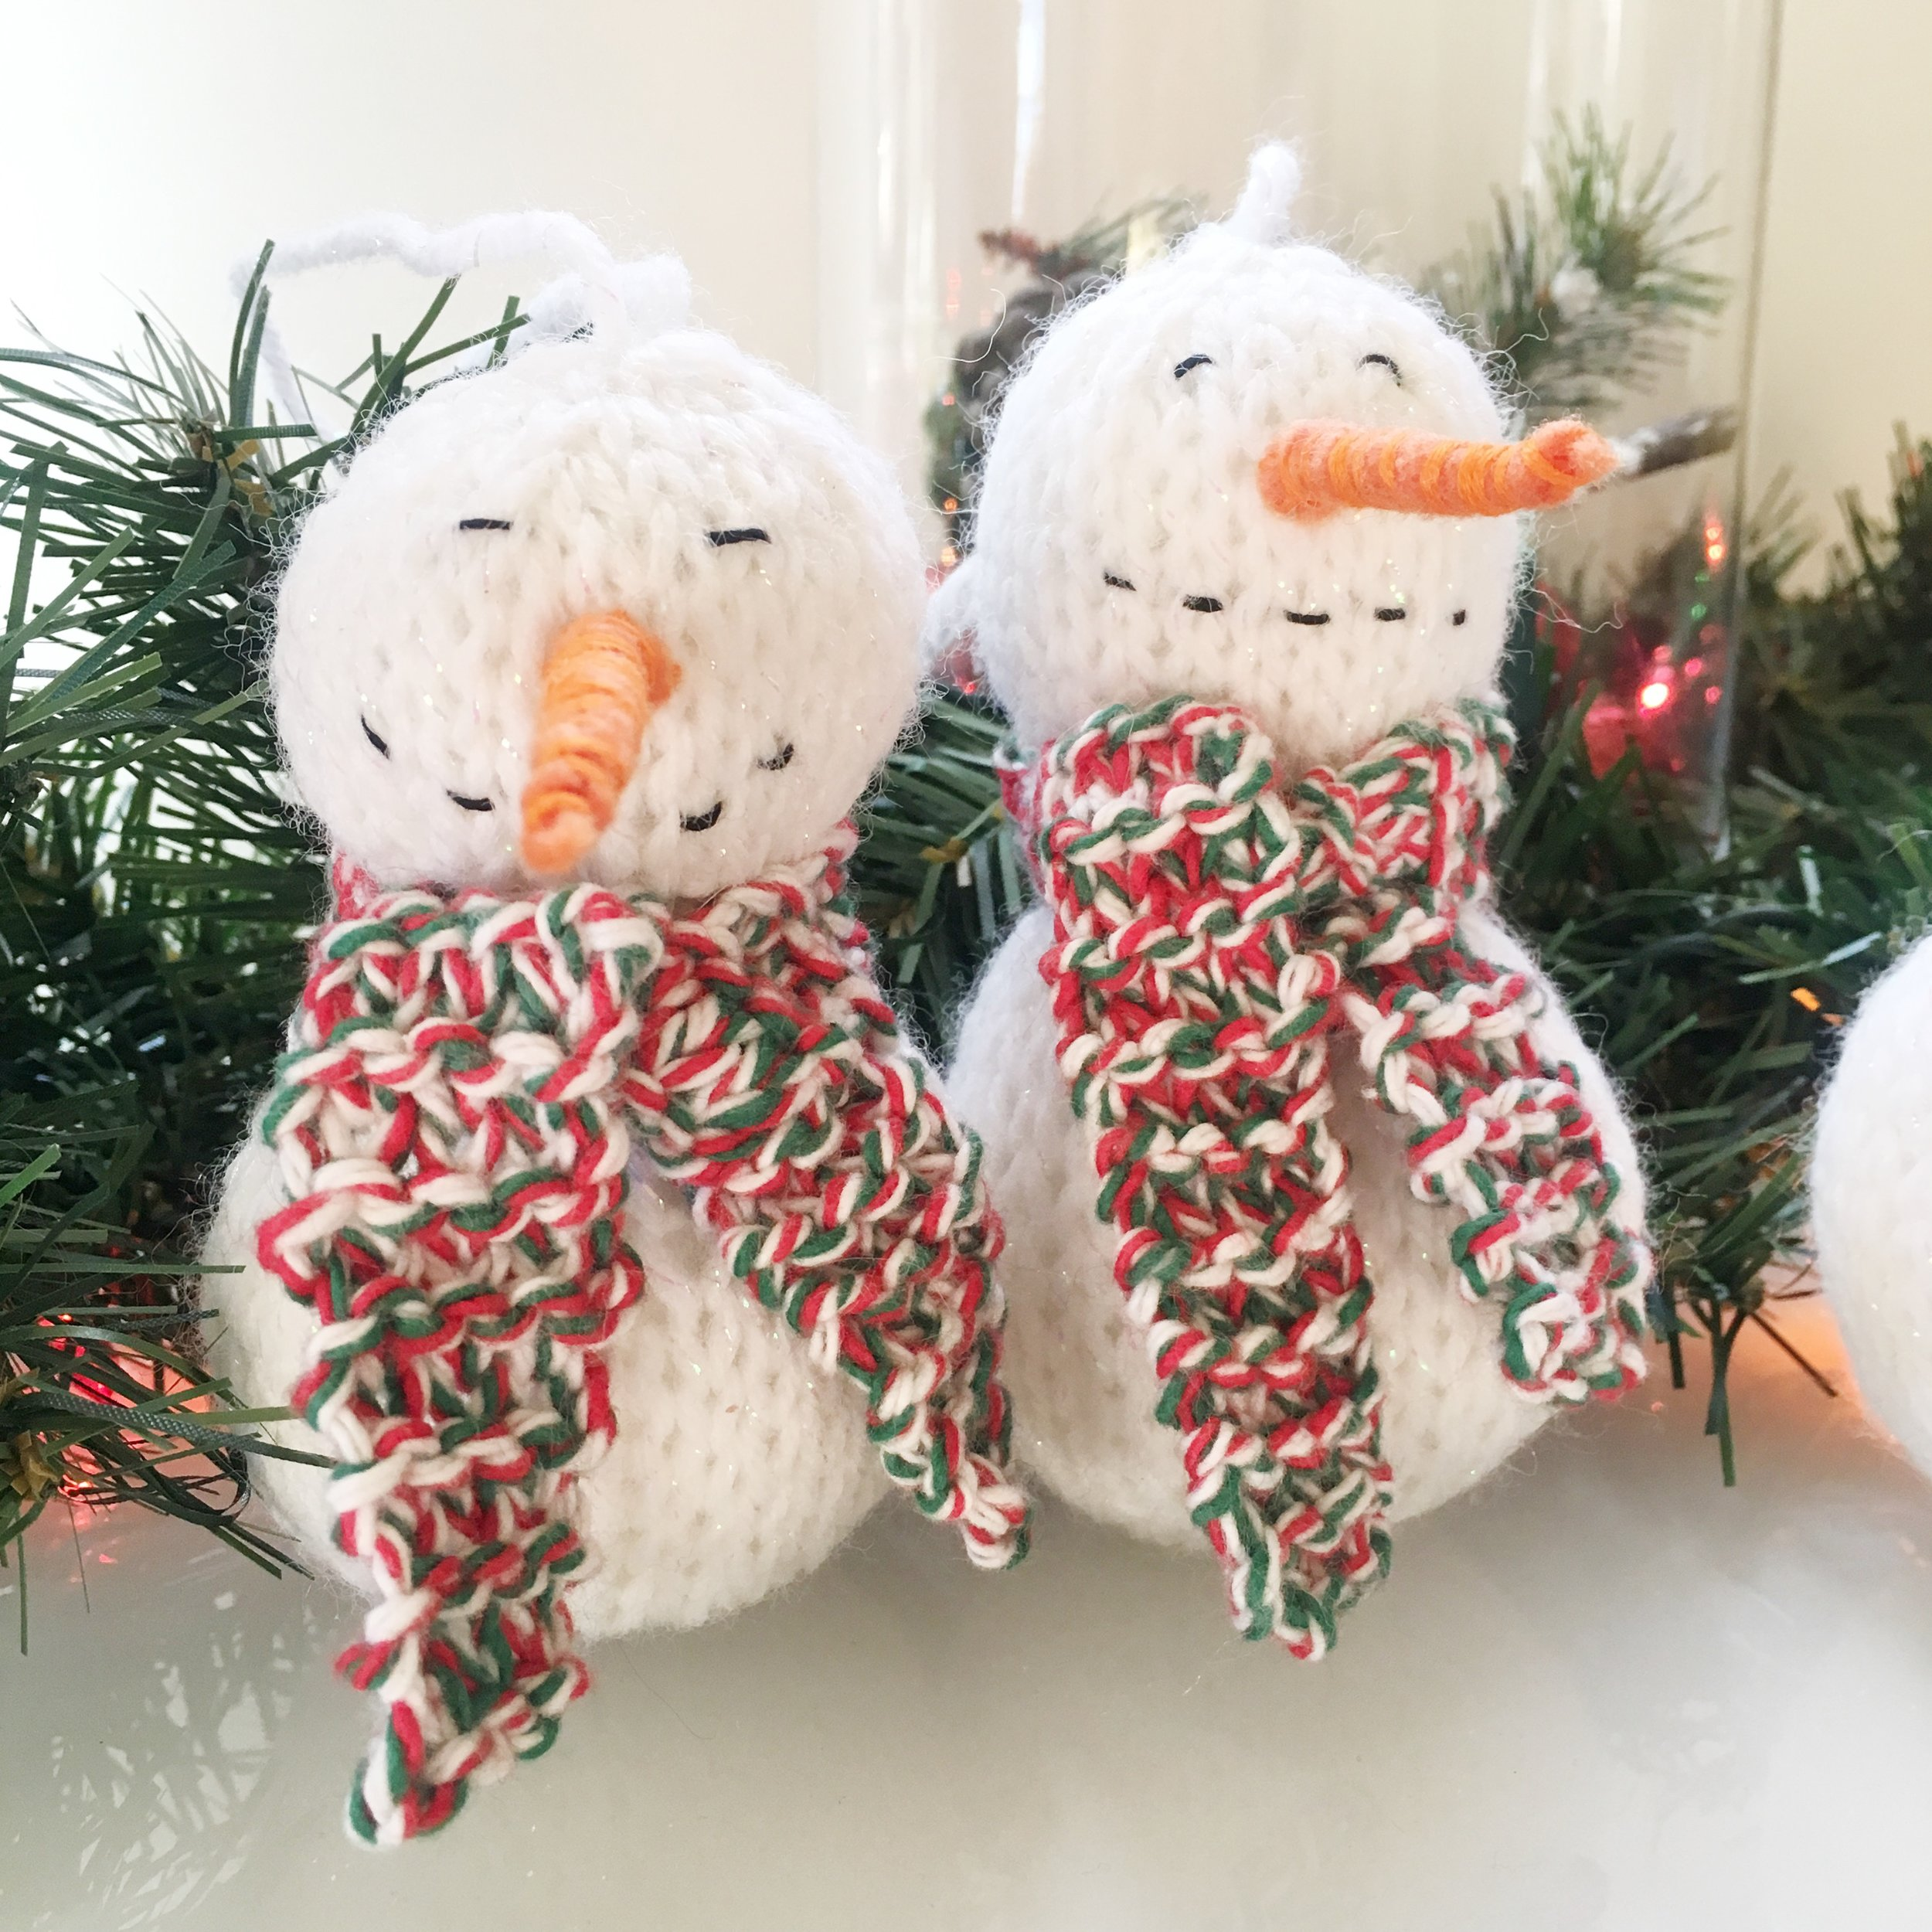 knit snowman ornament by elisemade